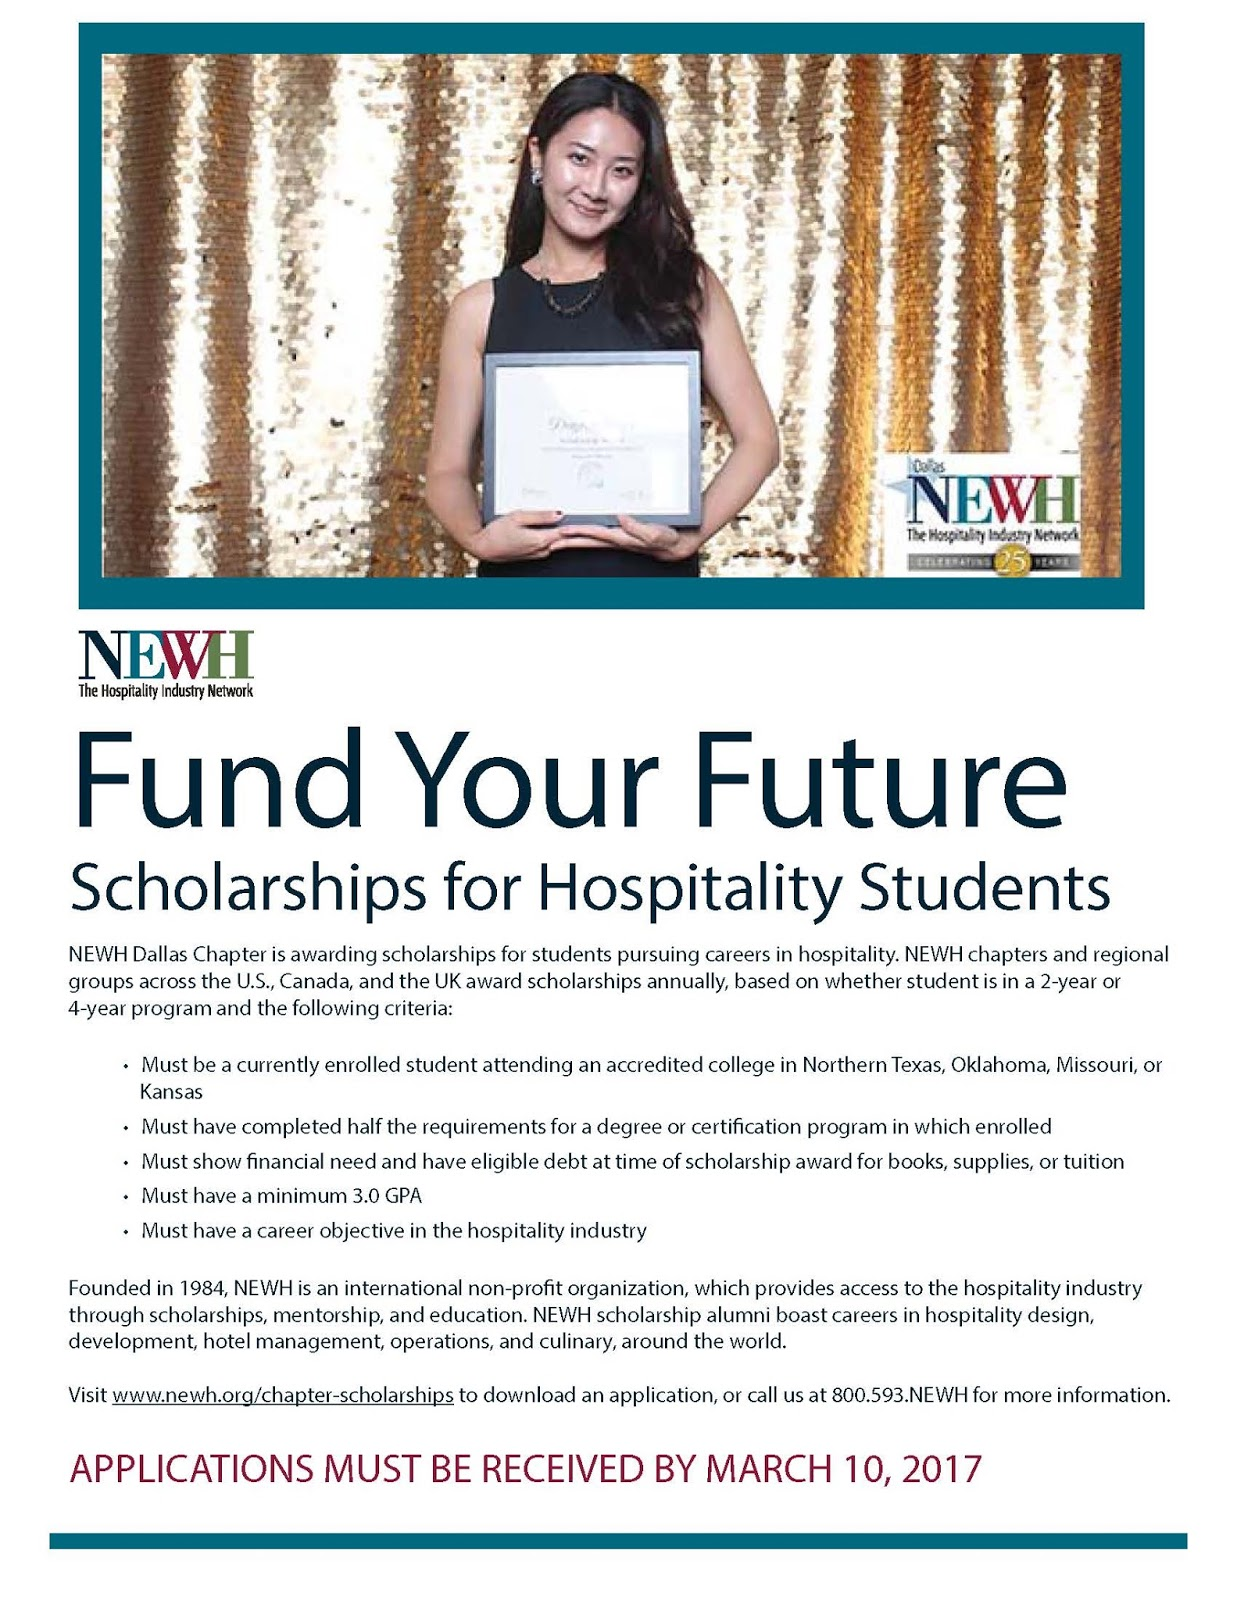 Interior Design Blog Newh Scholarships For Hospitality Students